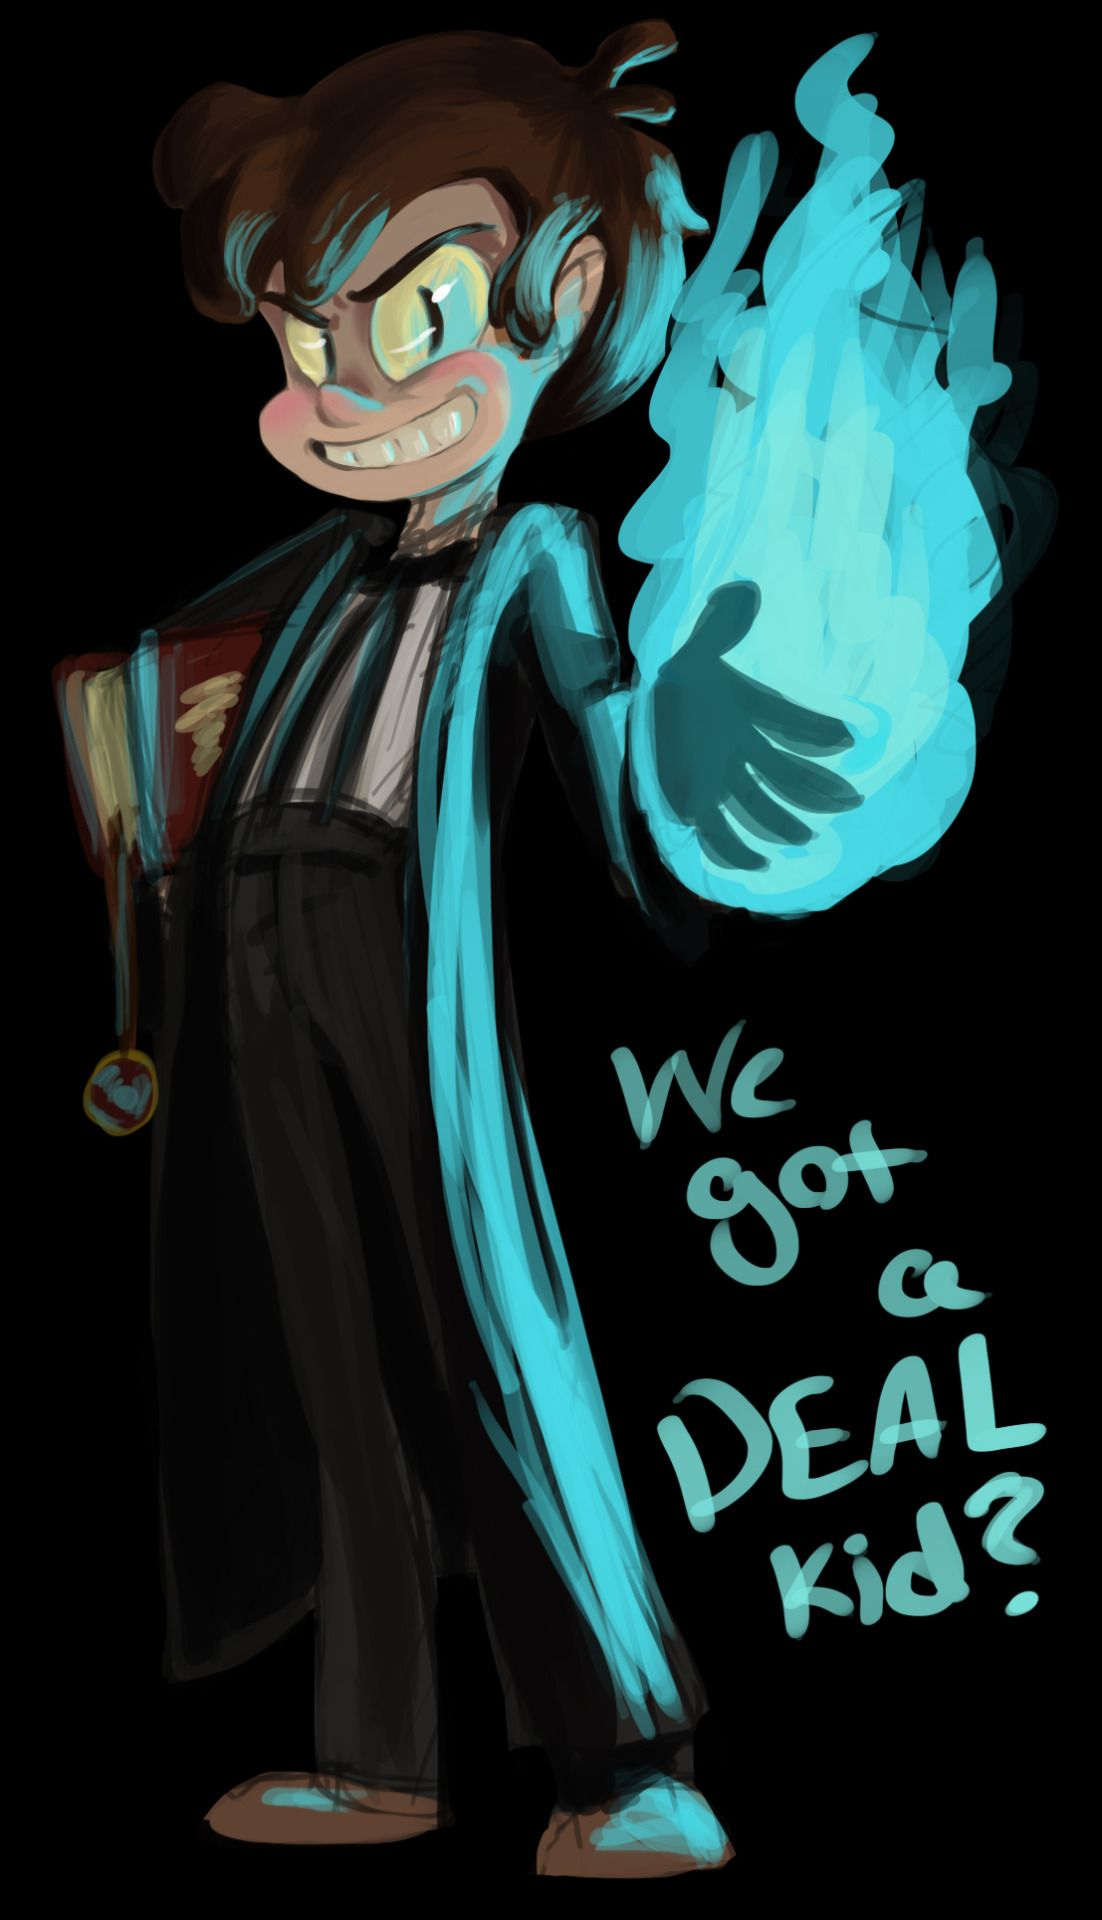 Took a half an hour from homework for a quick paint of one of my favorite villains from a kids show. A priest-costume-wearing, child-possessing demon of insanity and treachery? What could be better?